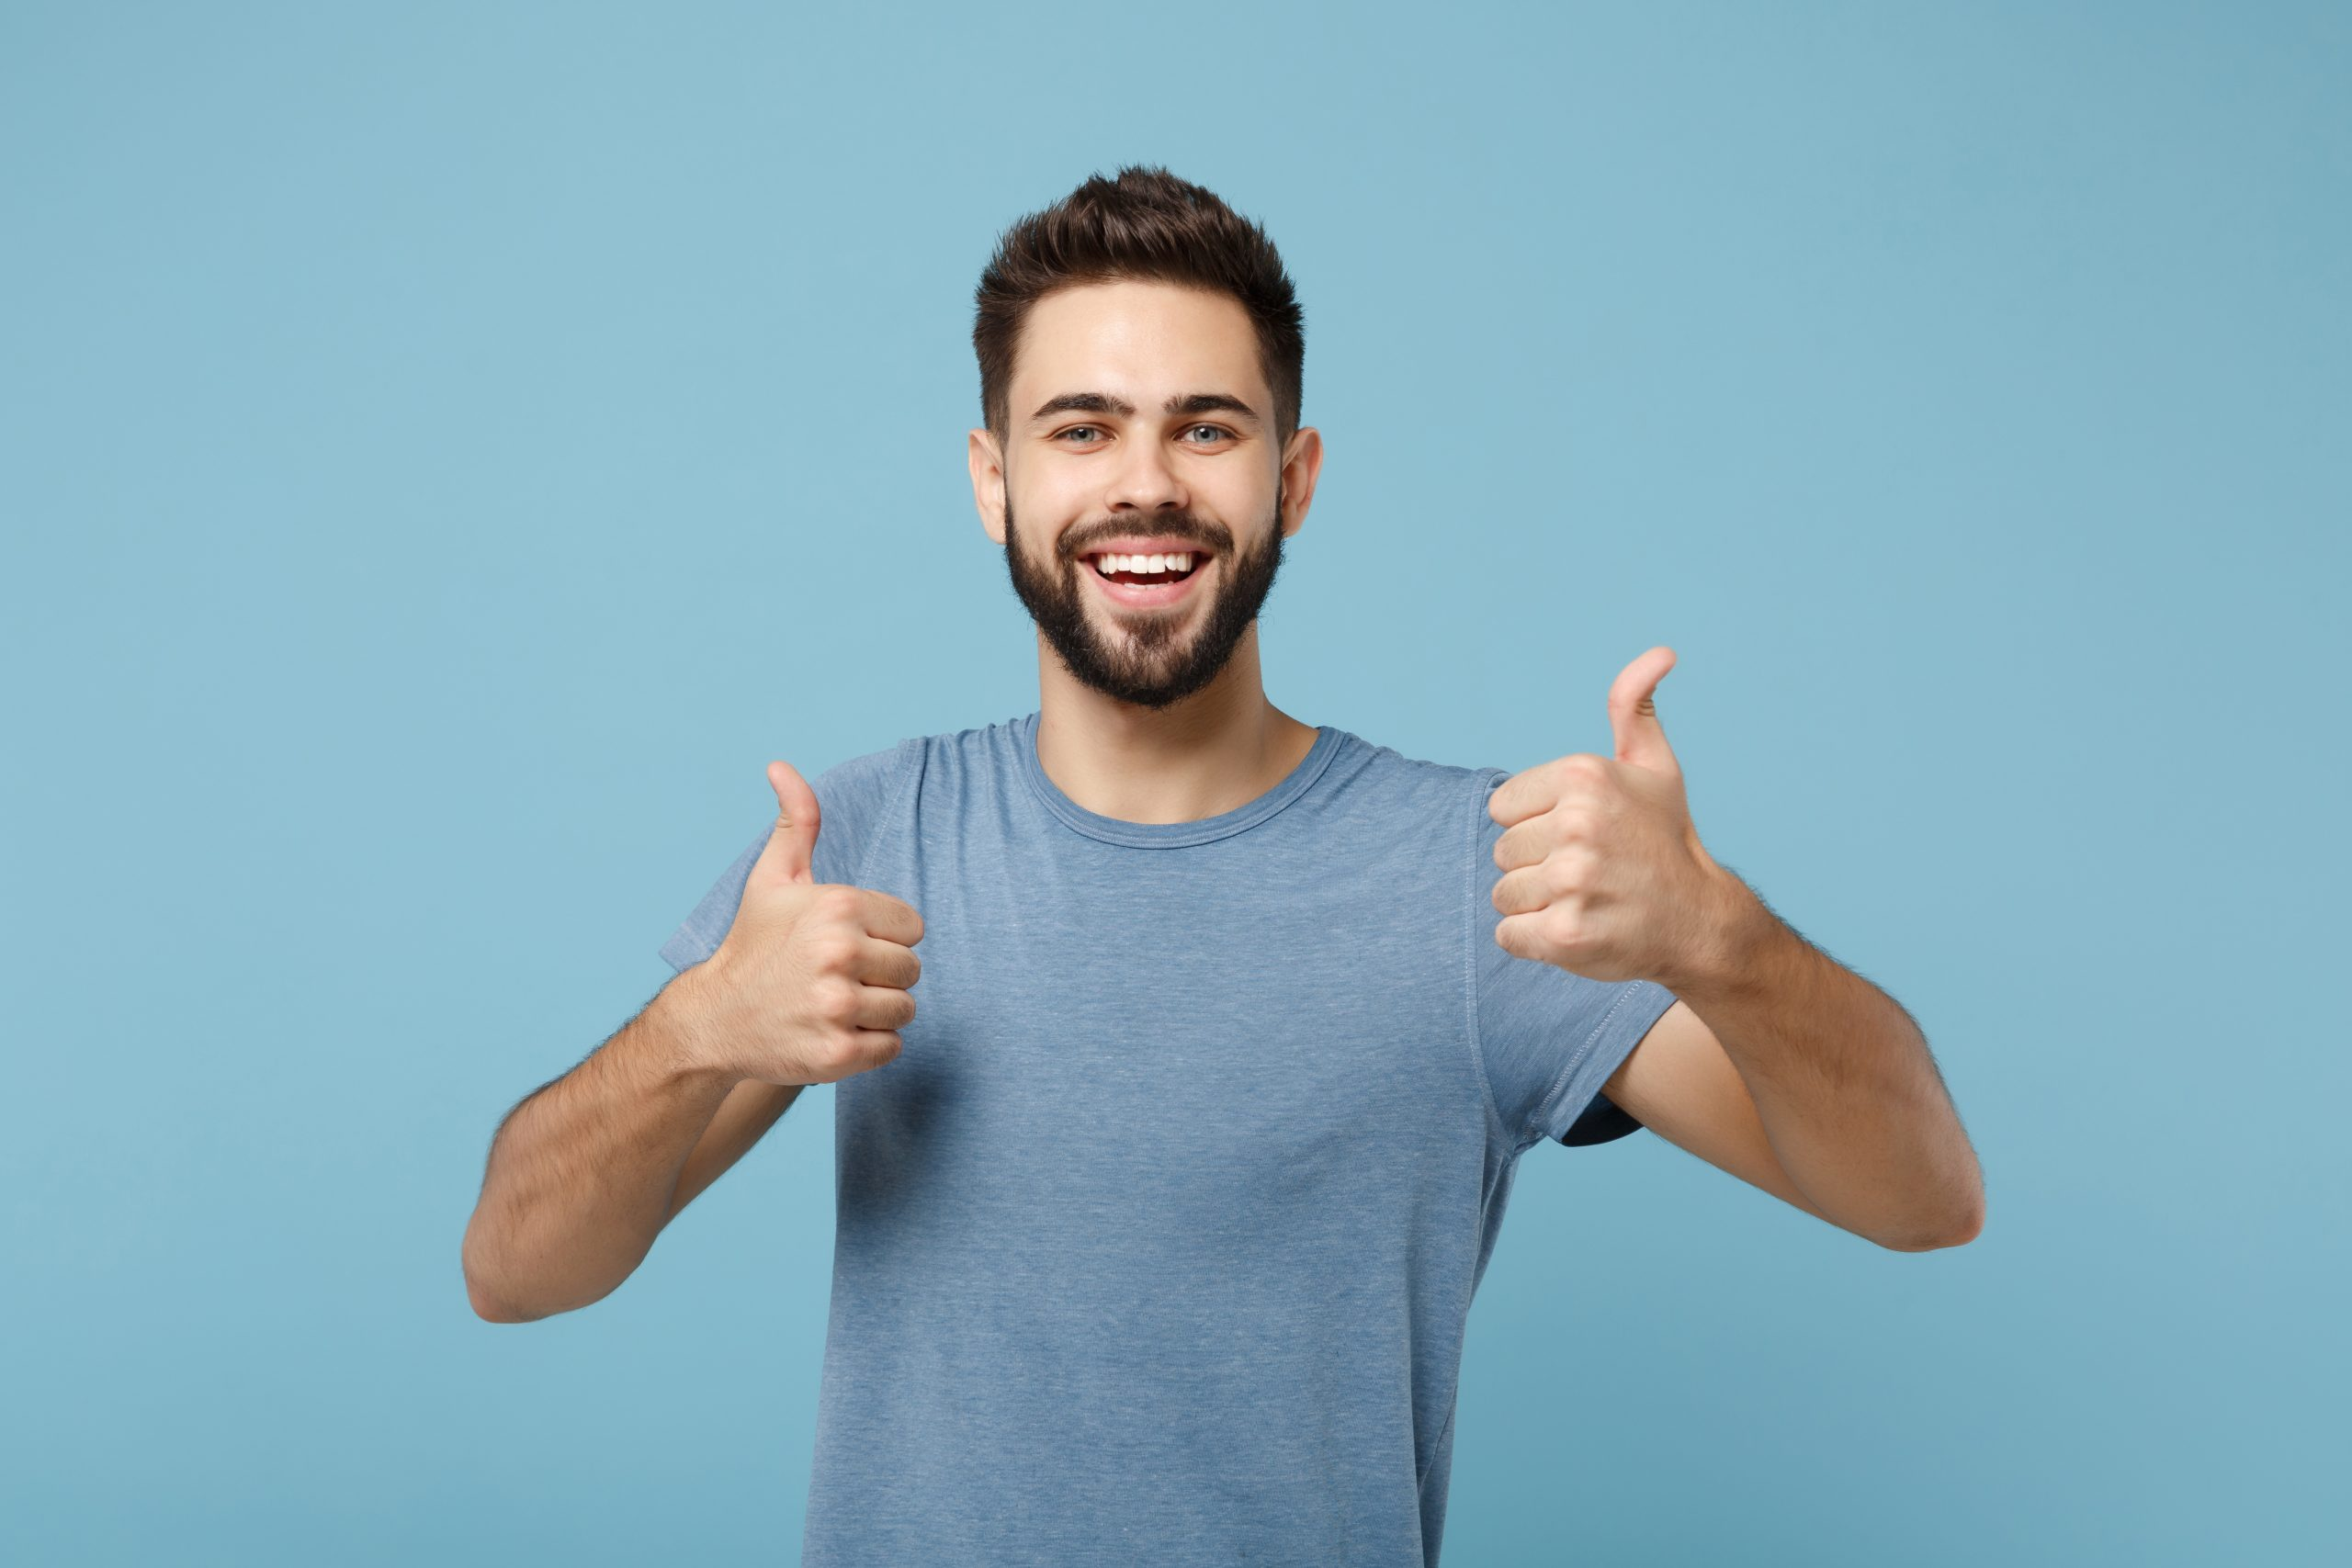 Young joyful funny smiling handsome man in casual clothes posing isolated on blue wall background, studio portrait. People sincere emotions lifestyle concept. Mock up copy space. Showing thumbs up